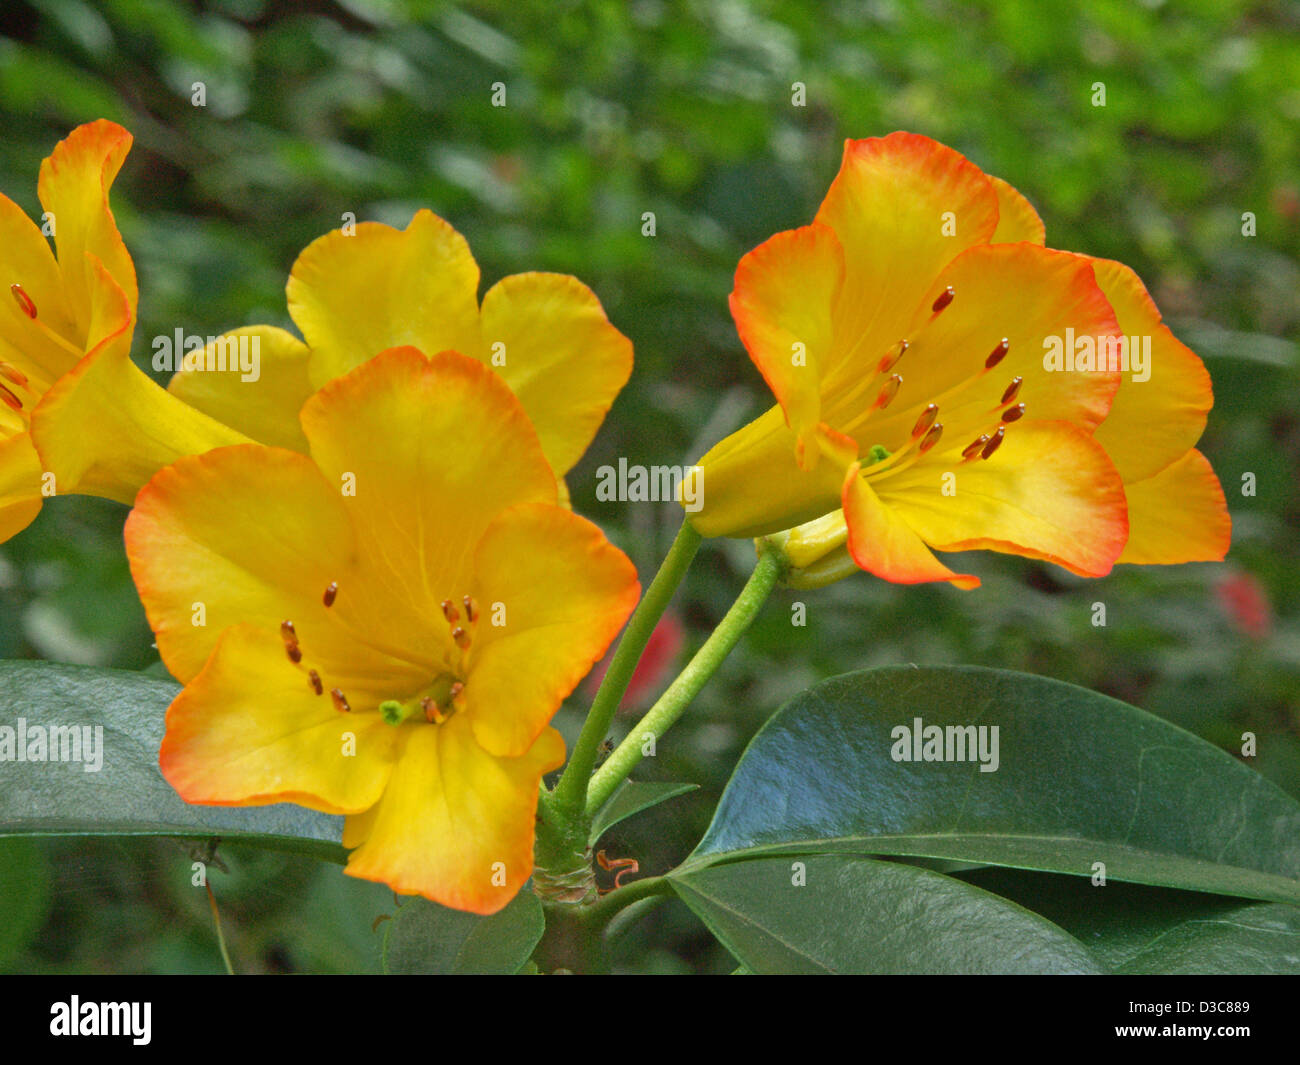 Bright Yellow Flowers With Petals Edged With Orange Together With